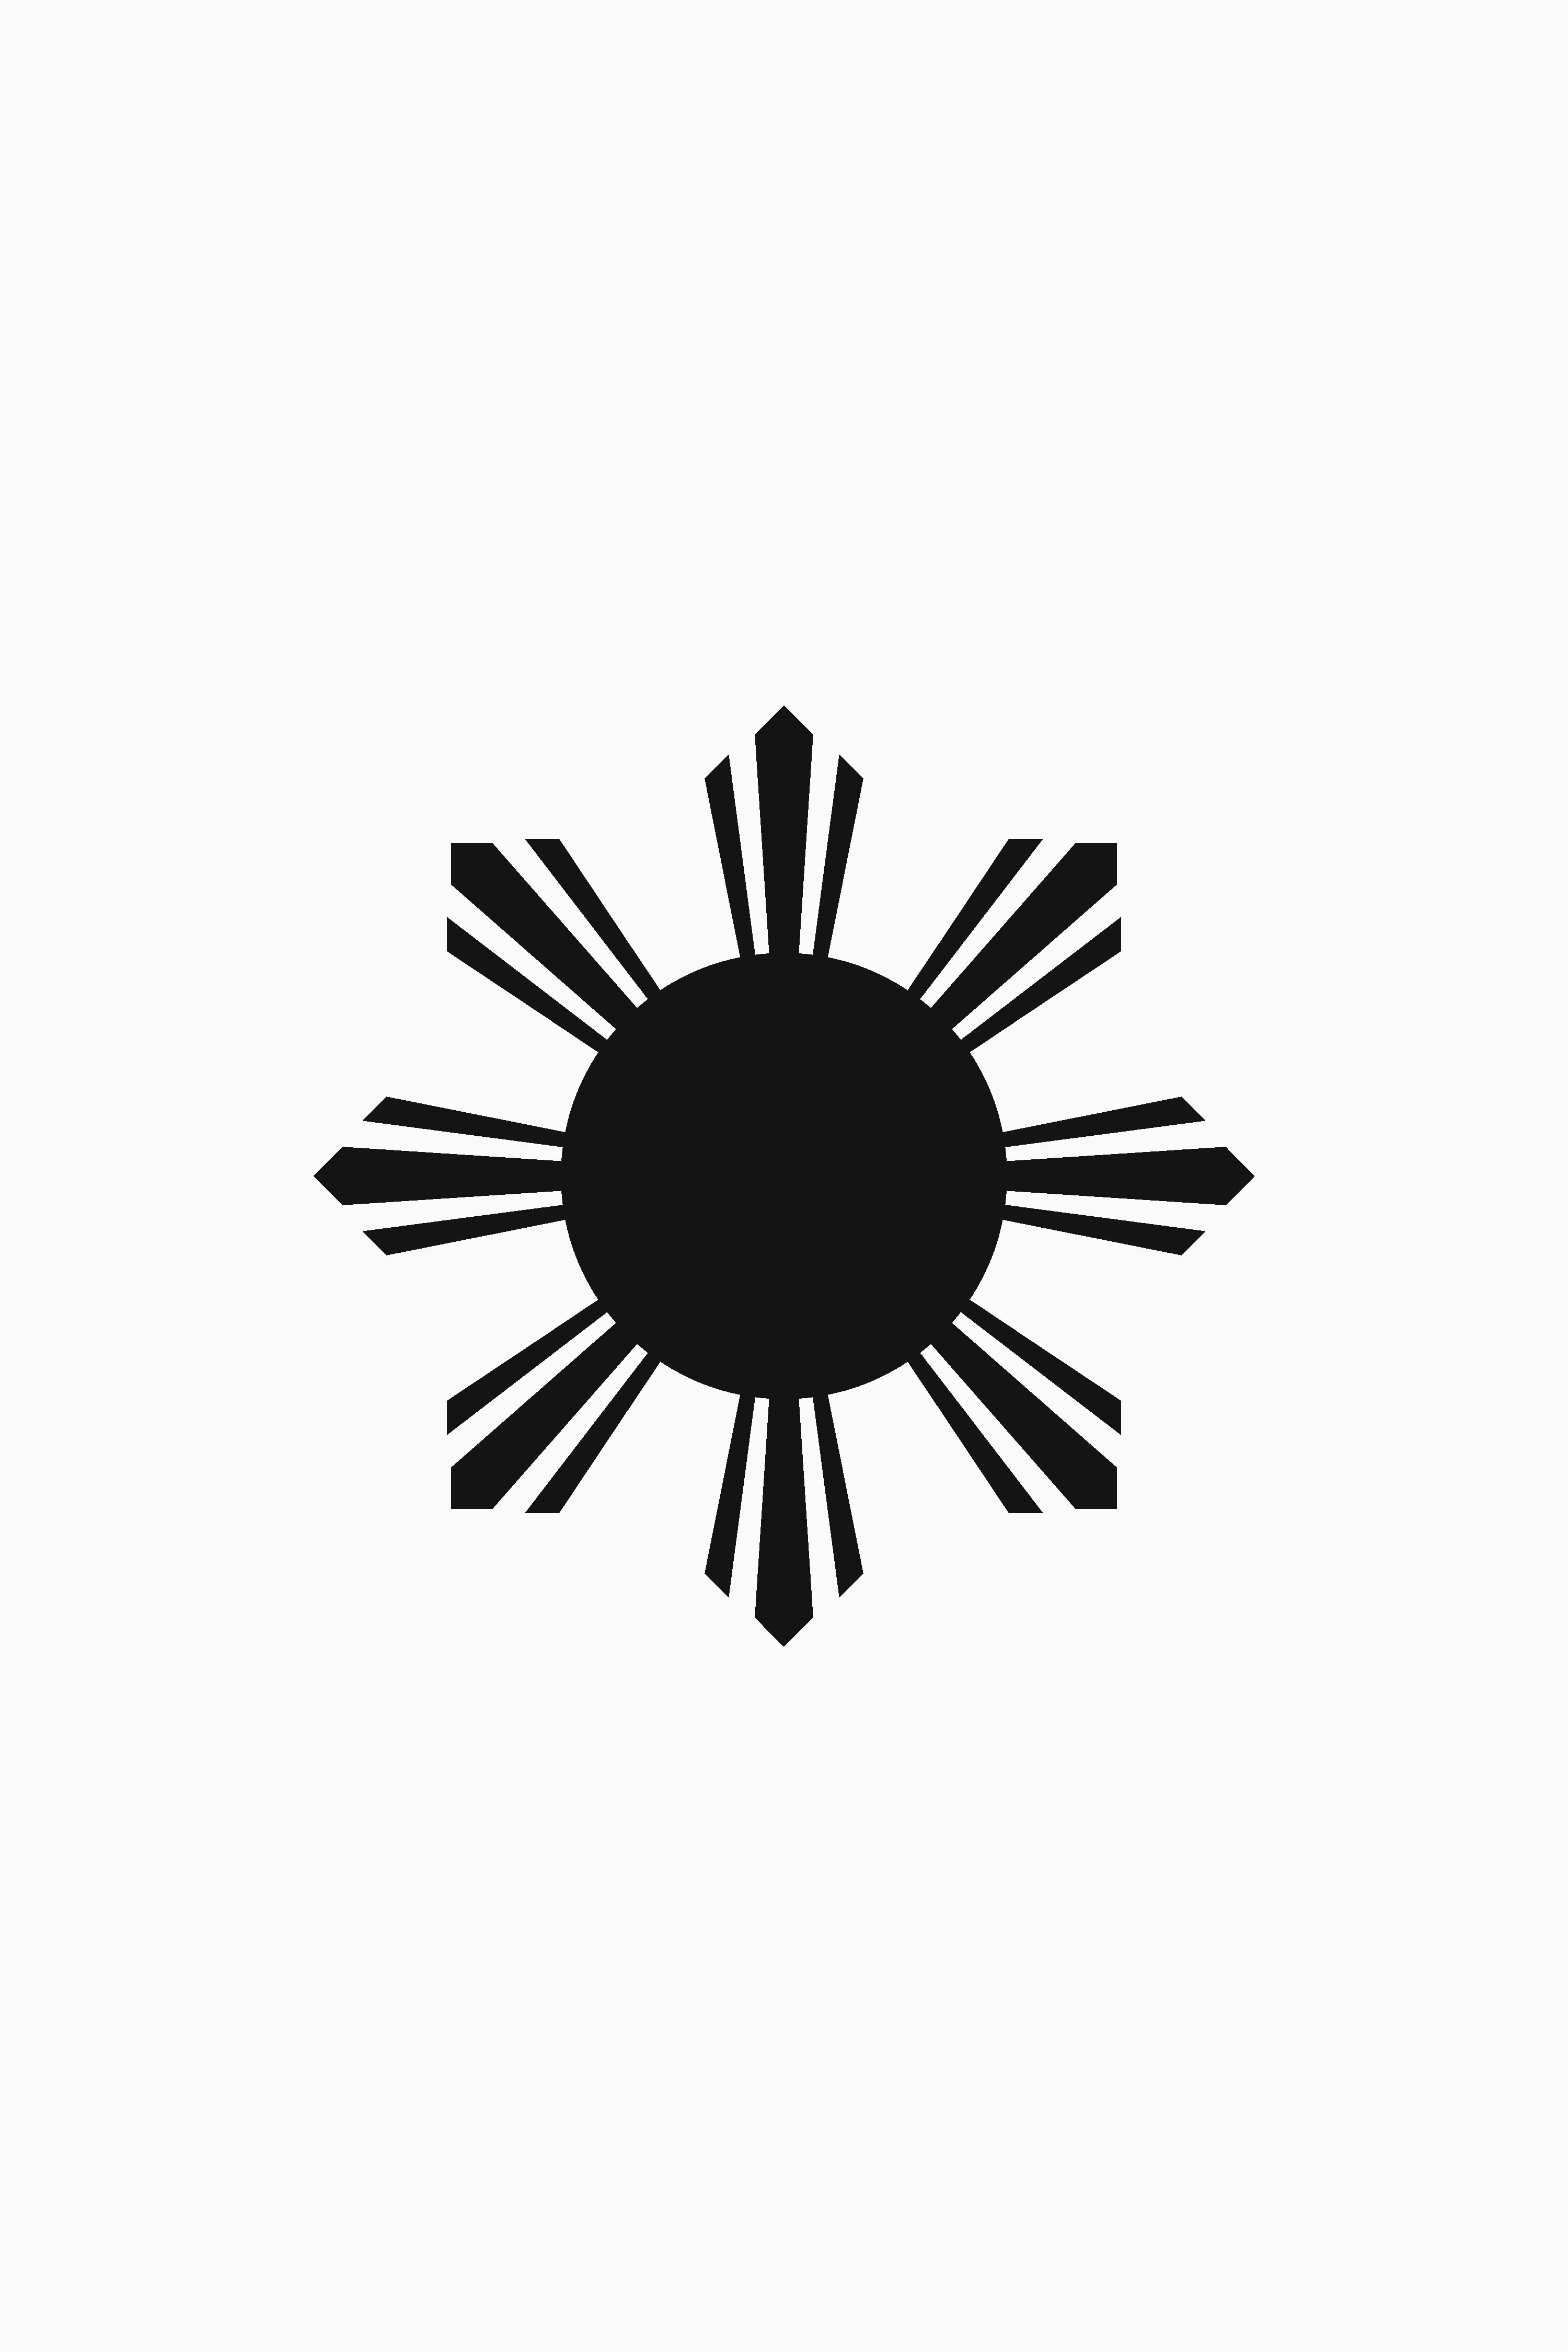 11+ Philippine flag clipart black and white ideas